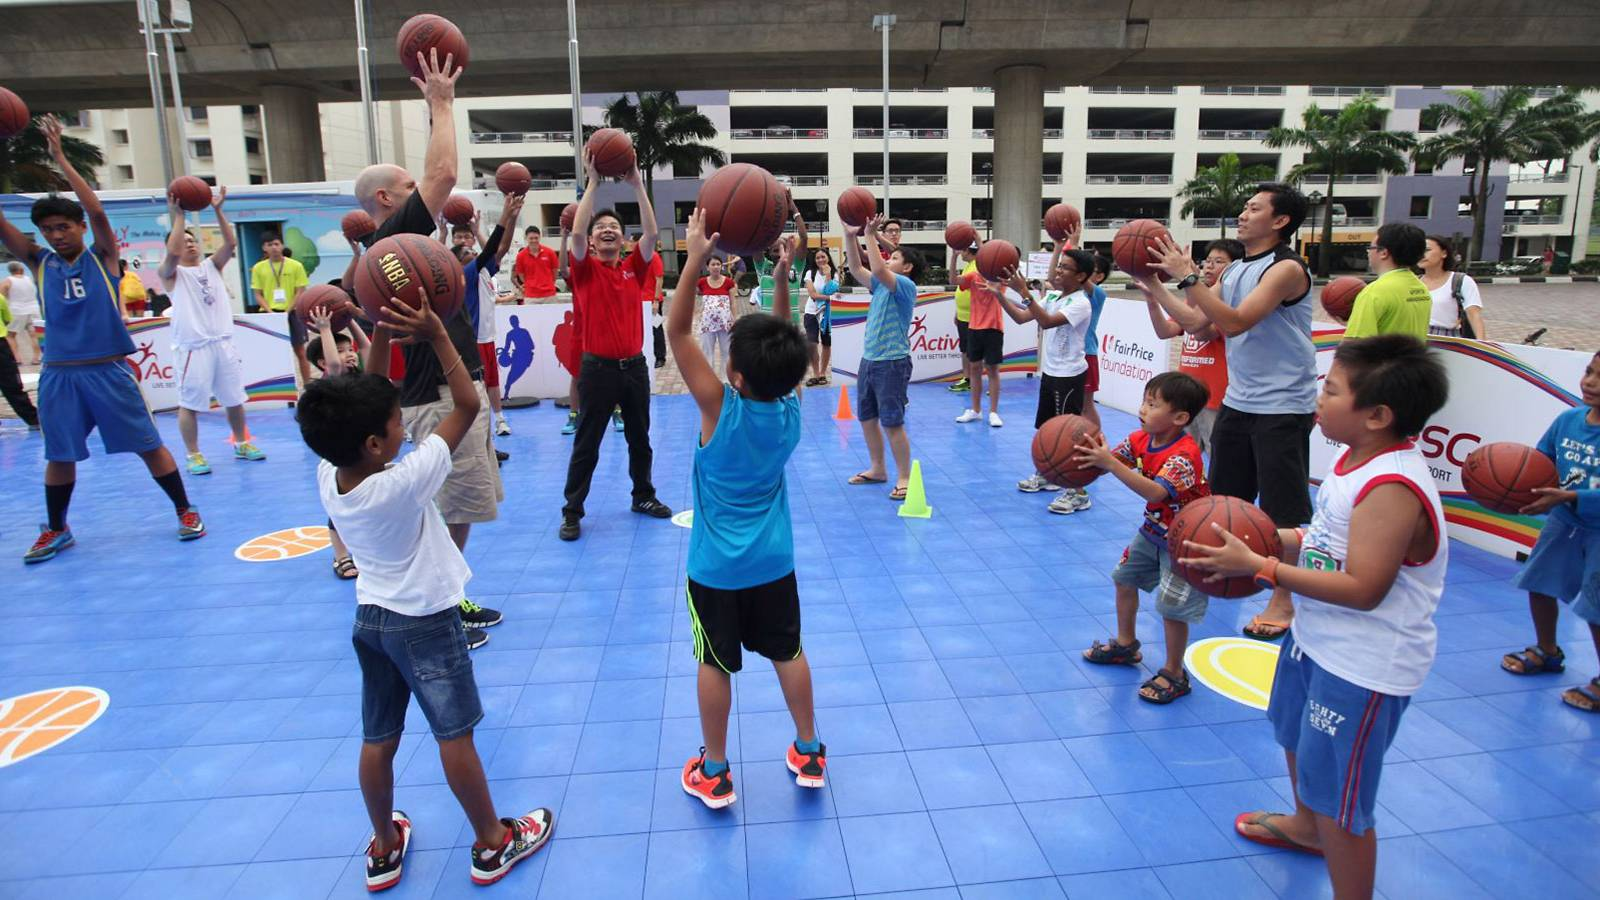 Kids---50-fantastically-fun-things-to-do-this-year-end-18.-ActiveSG-Sports-Holiday-Programmes-2016